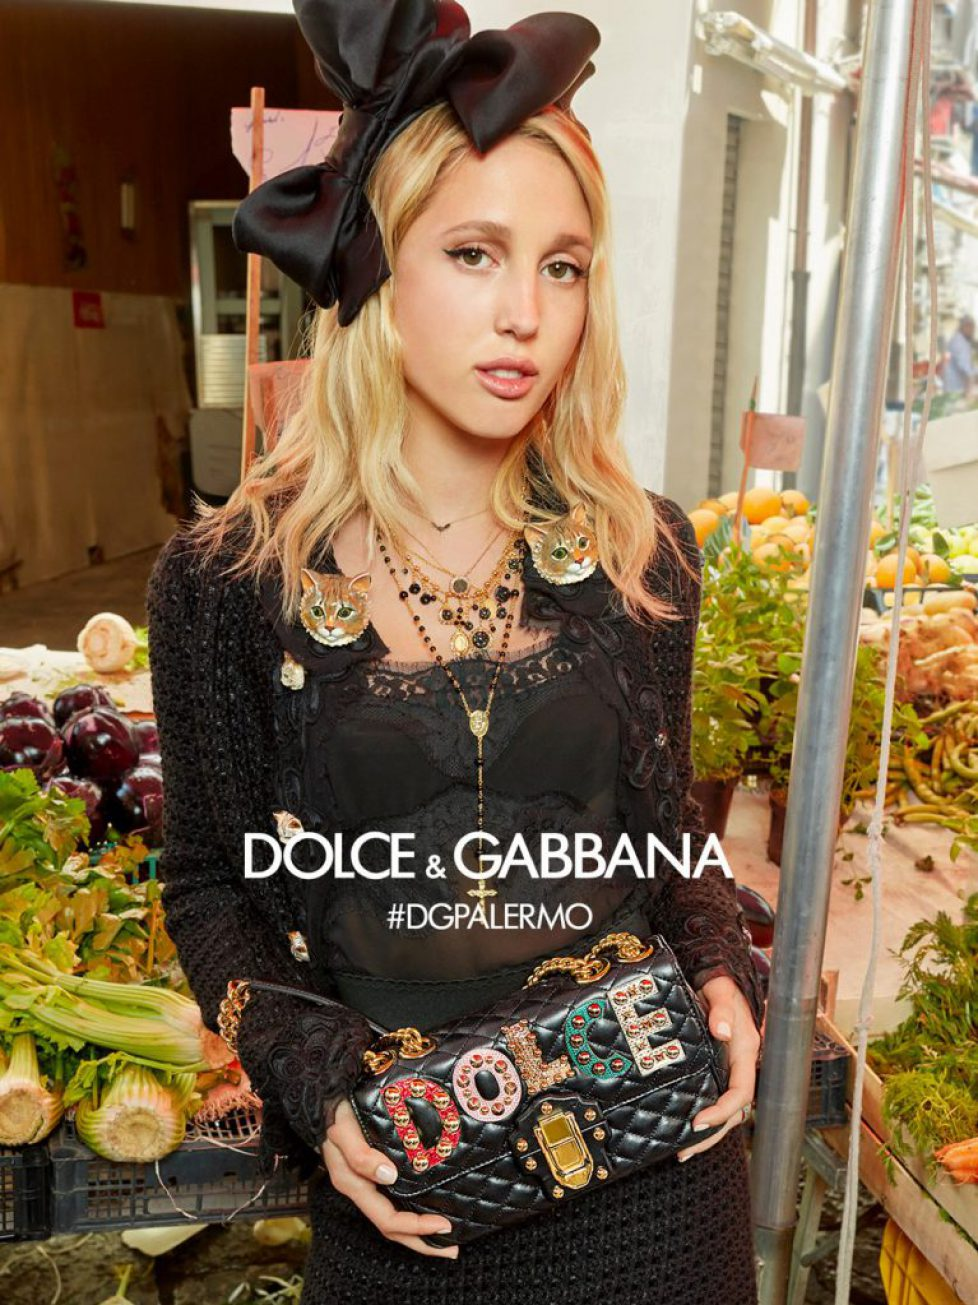 dolce-and-gabbana-winter-2018-woman-advertising-campaign-13-1079x1440